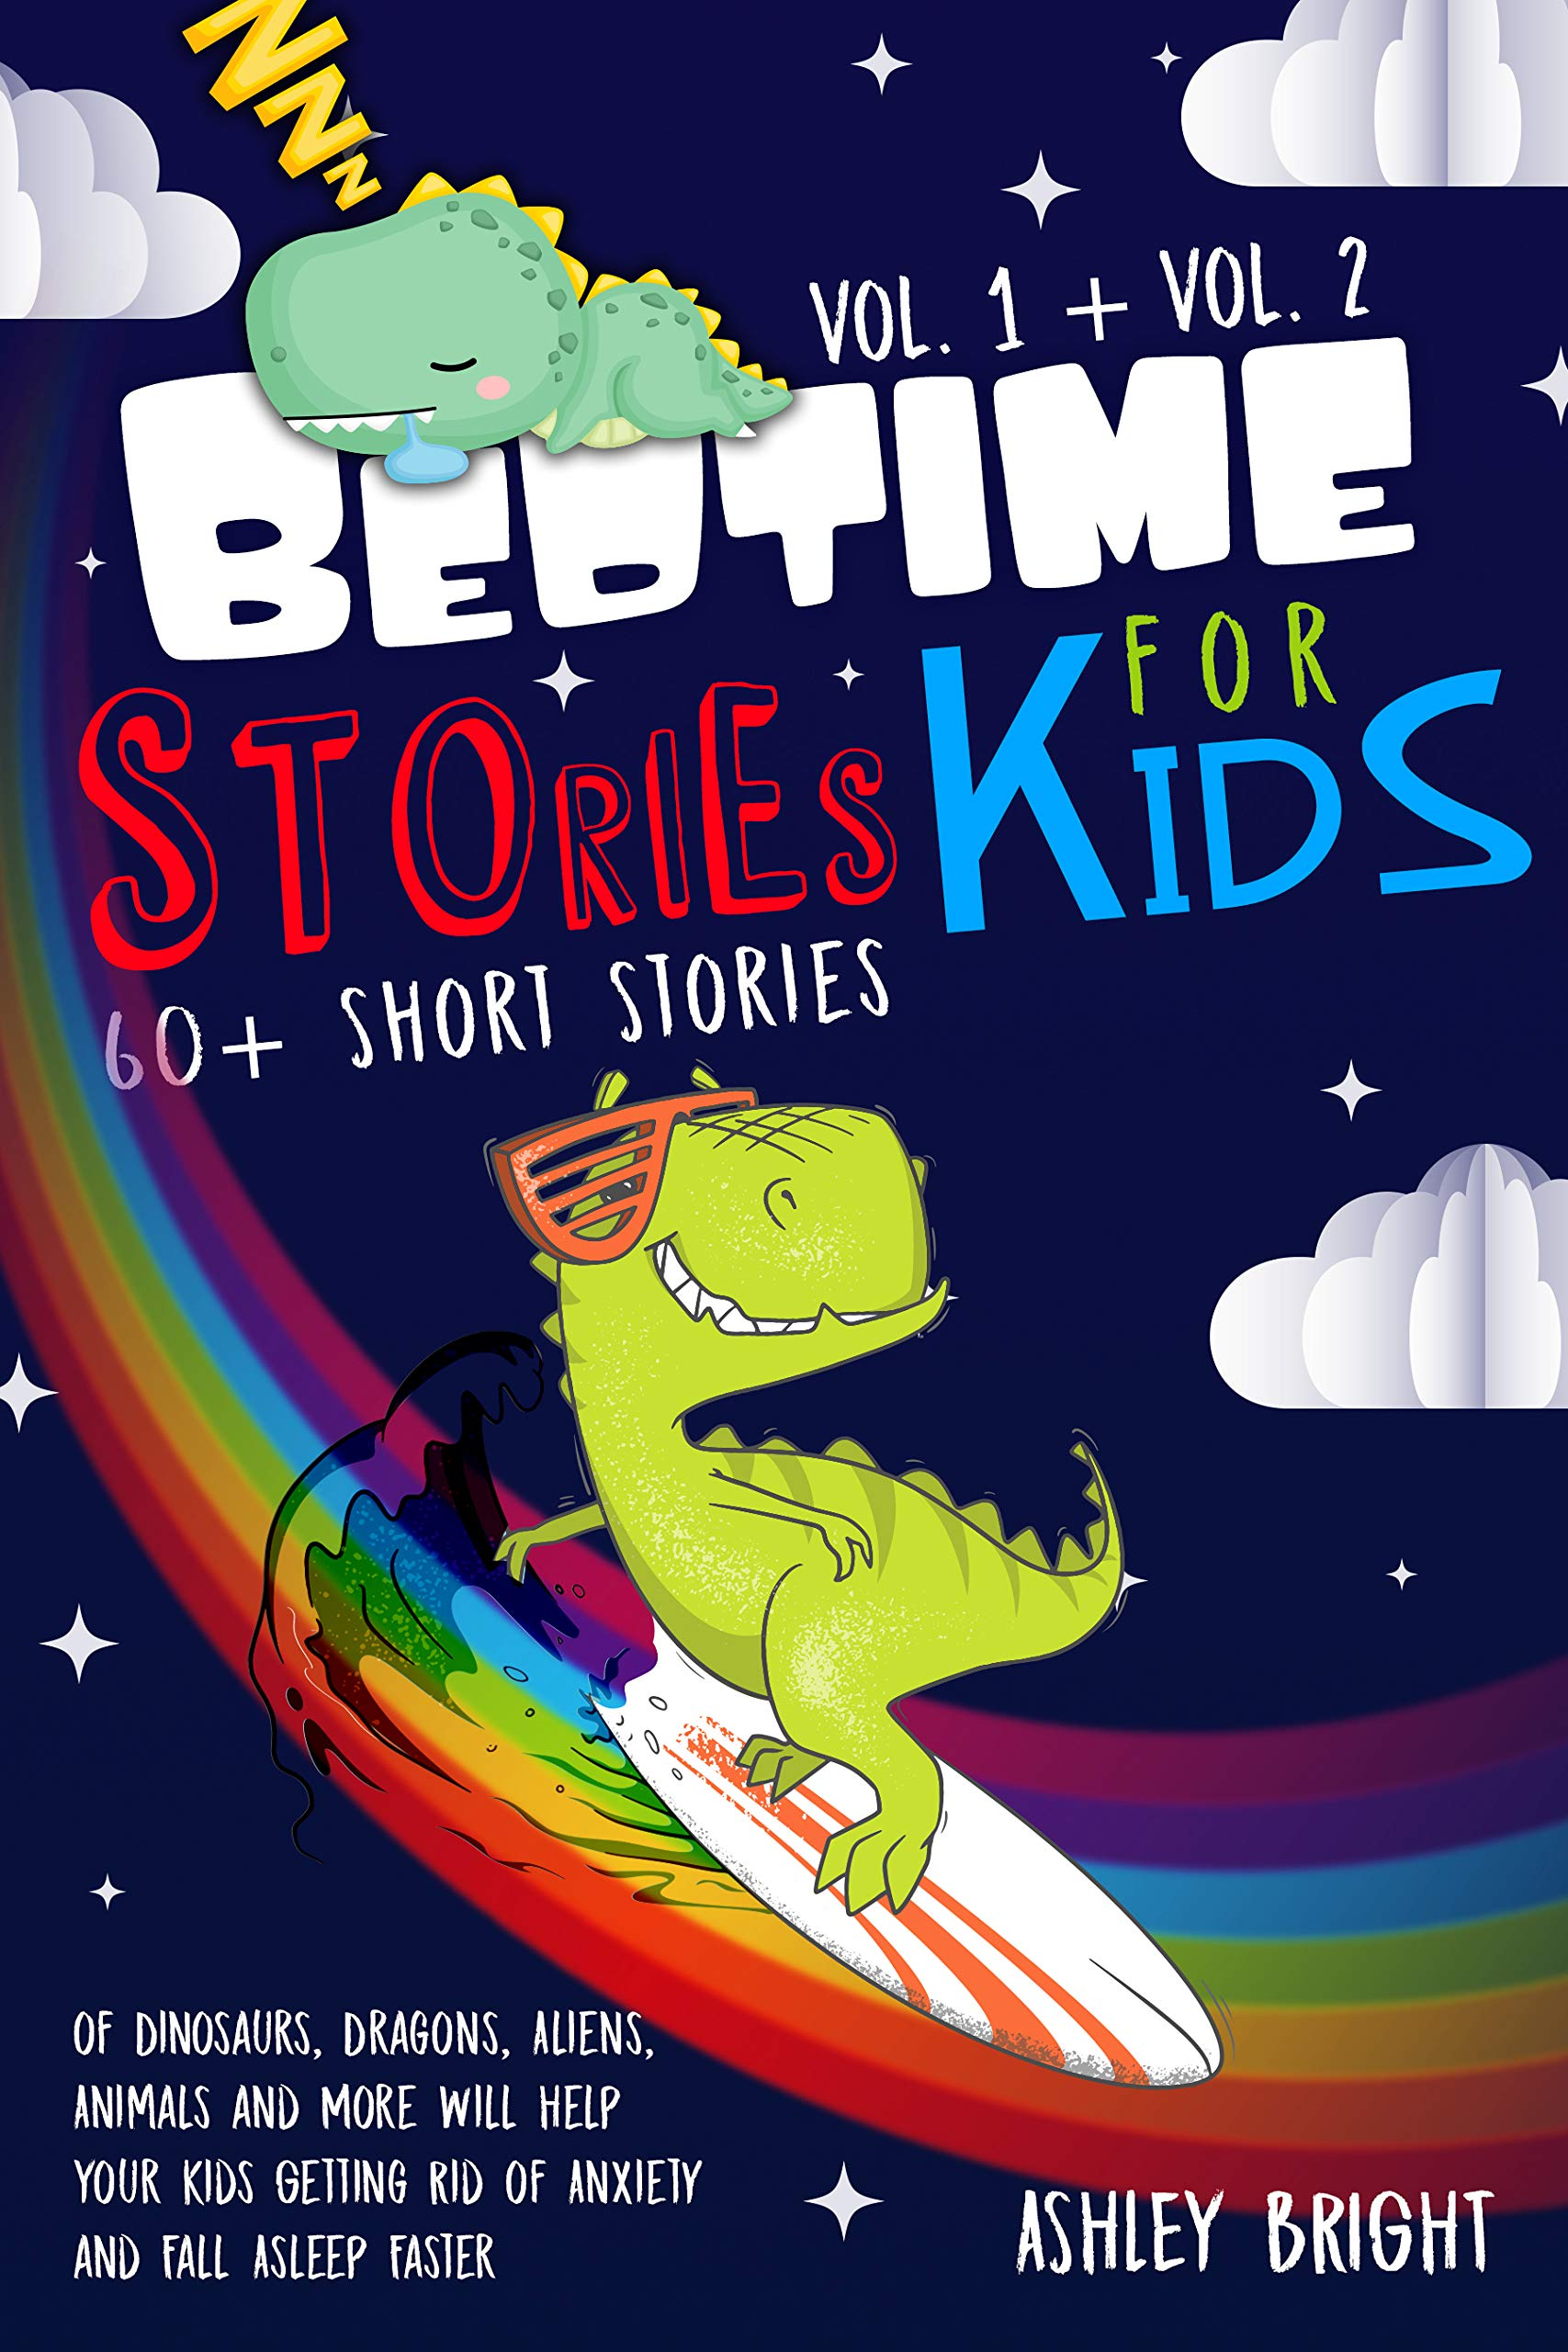 BEDTIME STORIES FOR KIDS: VOL 1 + VOL 2: 60+ Short Stories of Dinosaurs, Dragons, Aliens, Animals and More Will Help Your Kids Getting Rid of Anxiety and Fall Asleep Faster